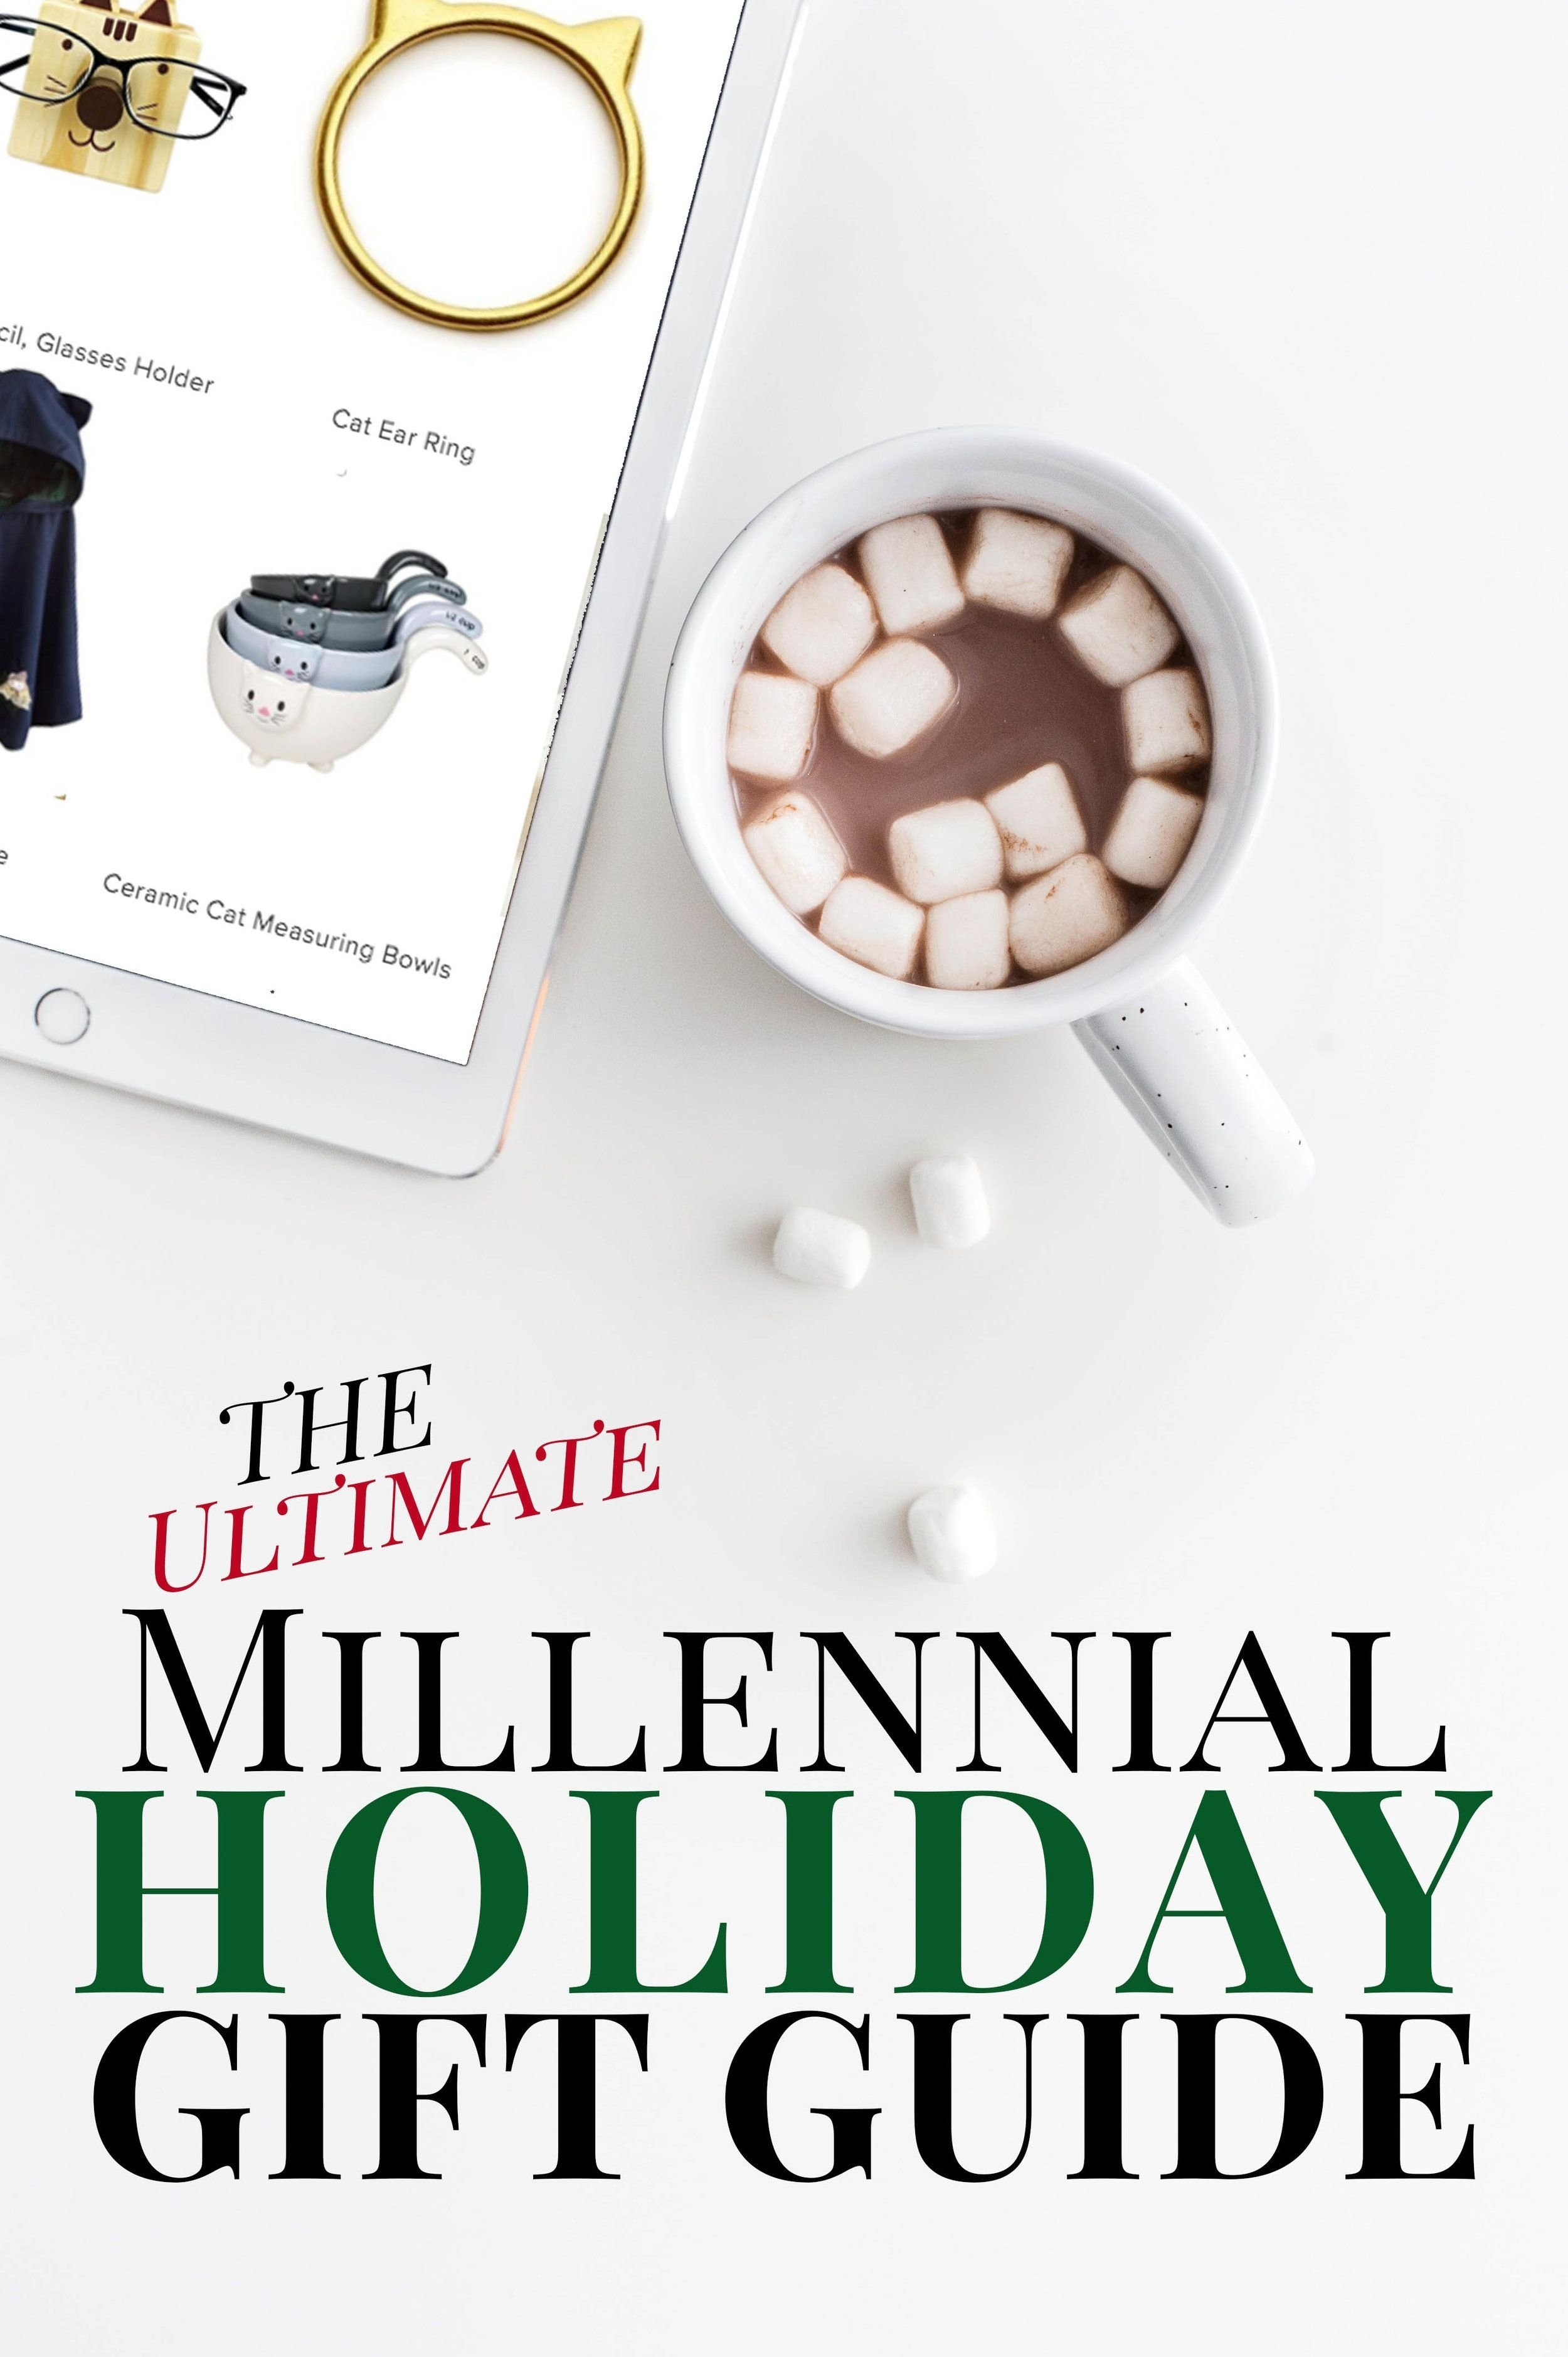 10 Lovable Gift Ideas For Family Members millennial holiday gift guide christmas gift ideas for millennials